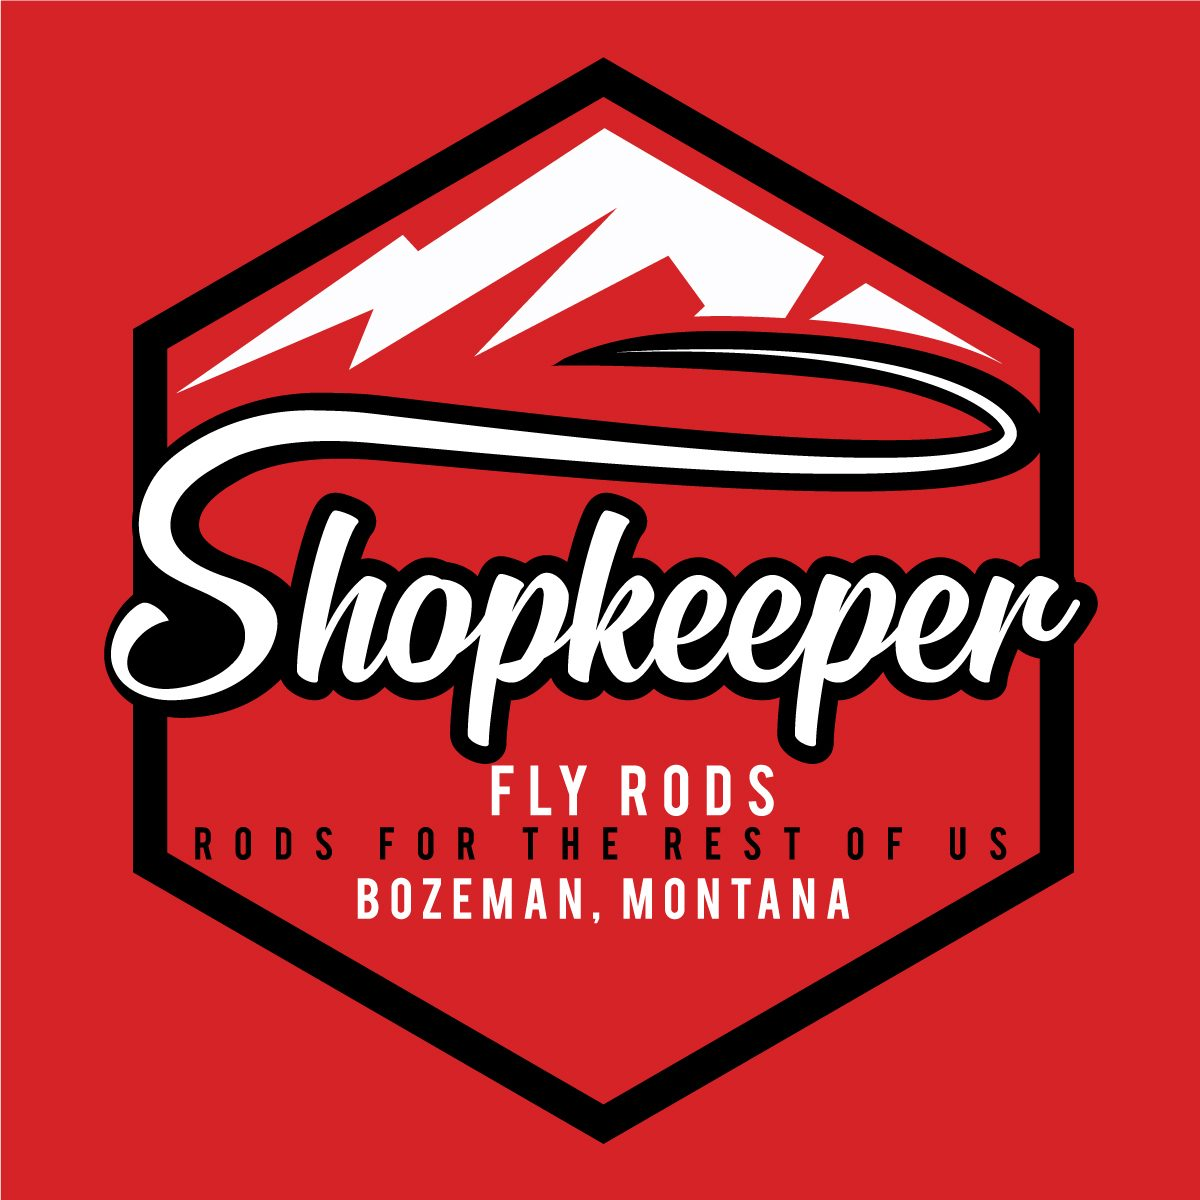 cropped-shopkeeper-fly-rods-rods-for-the-rest-of-us-bozeman-montana-2.jpg